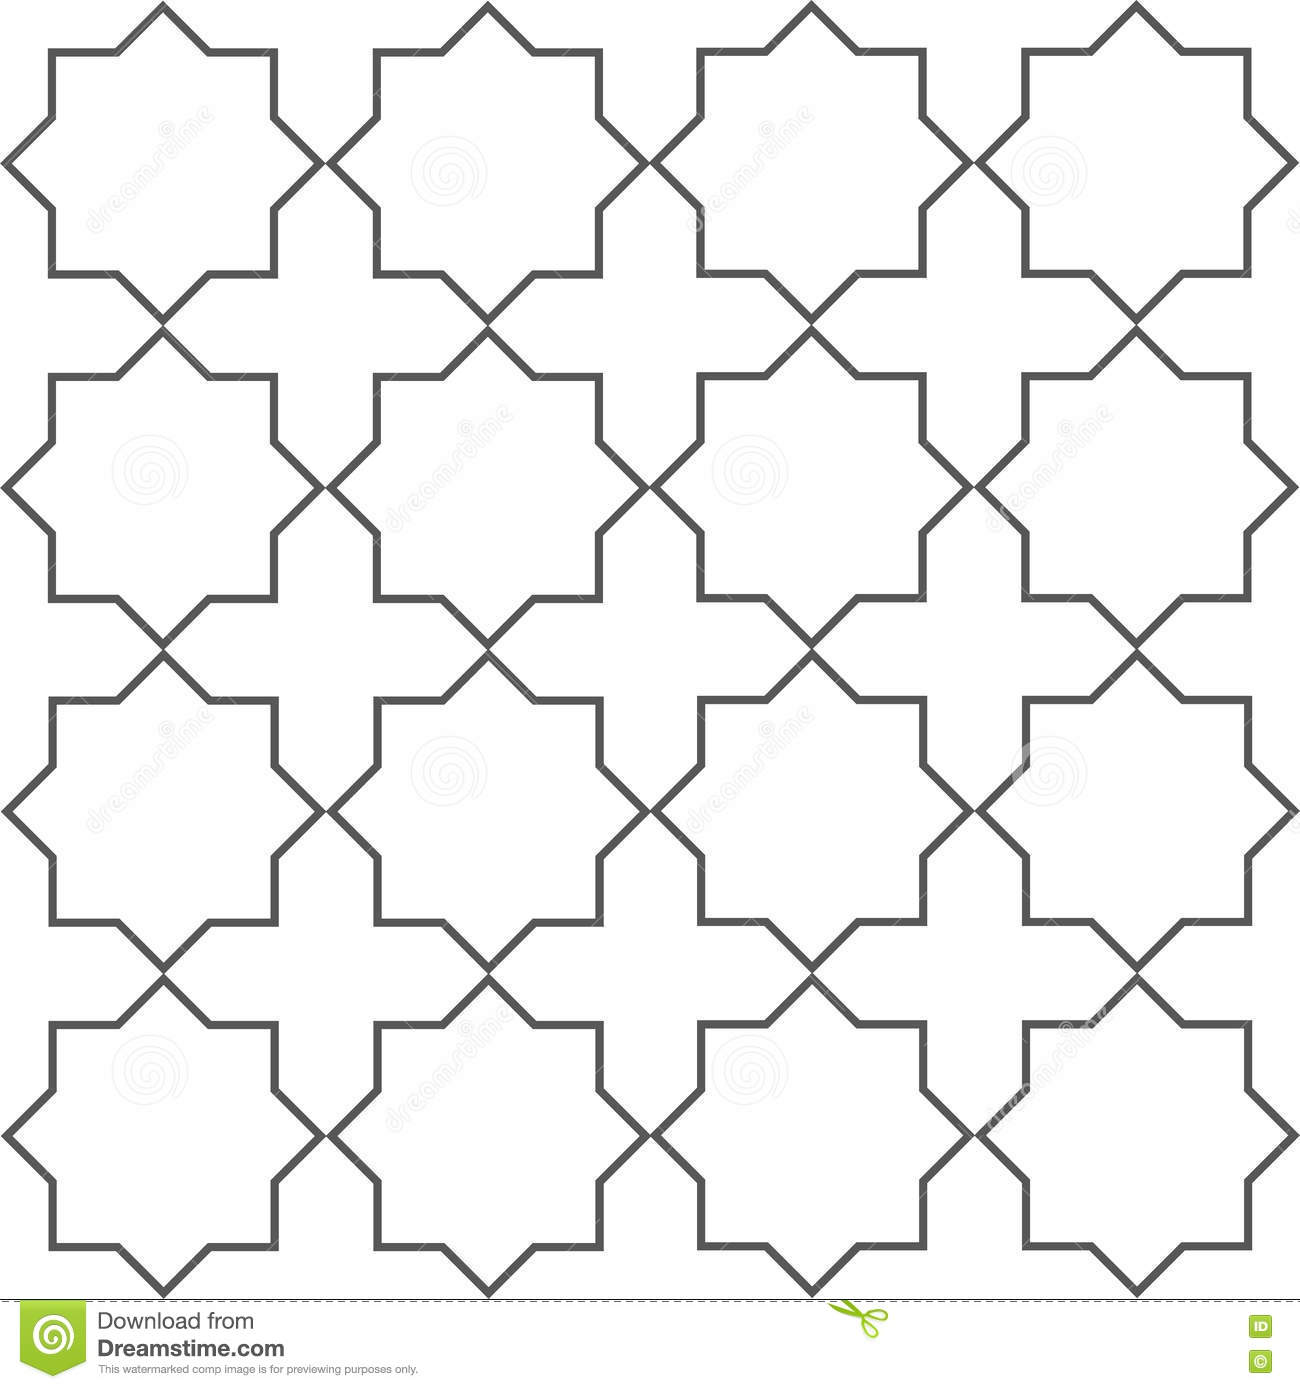 simple background islamic shape stock vector illustration of paper abstract 71709072 dreamstime com